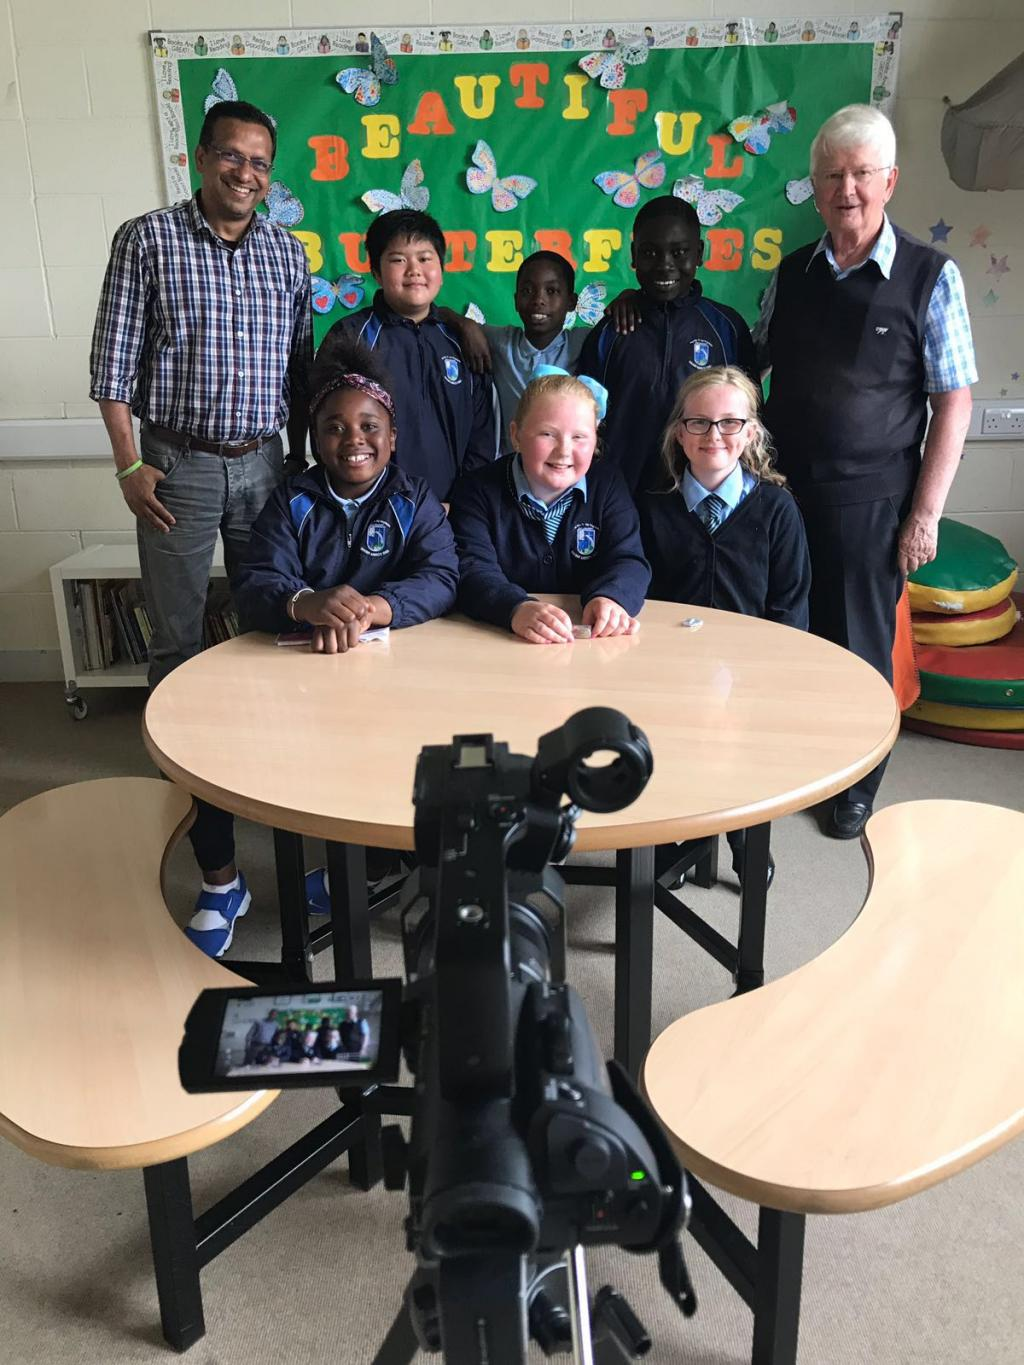 5th Class Children - Future TV Stars!